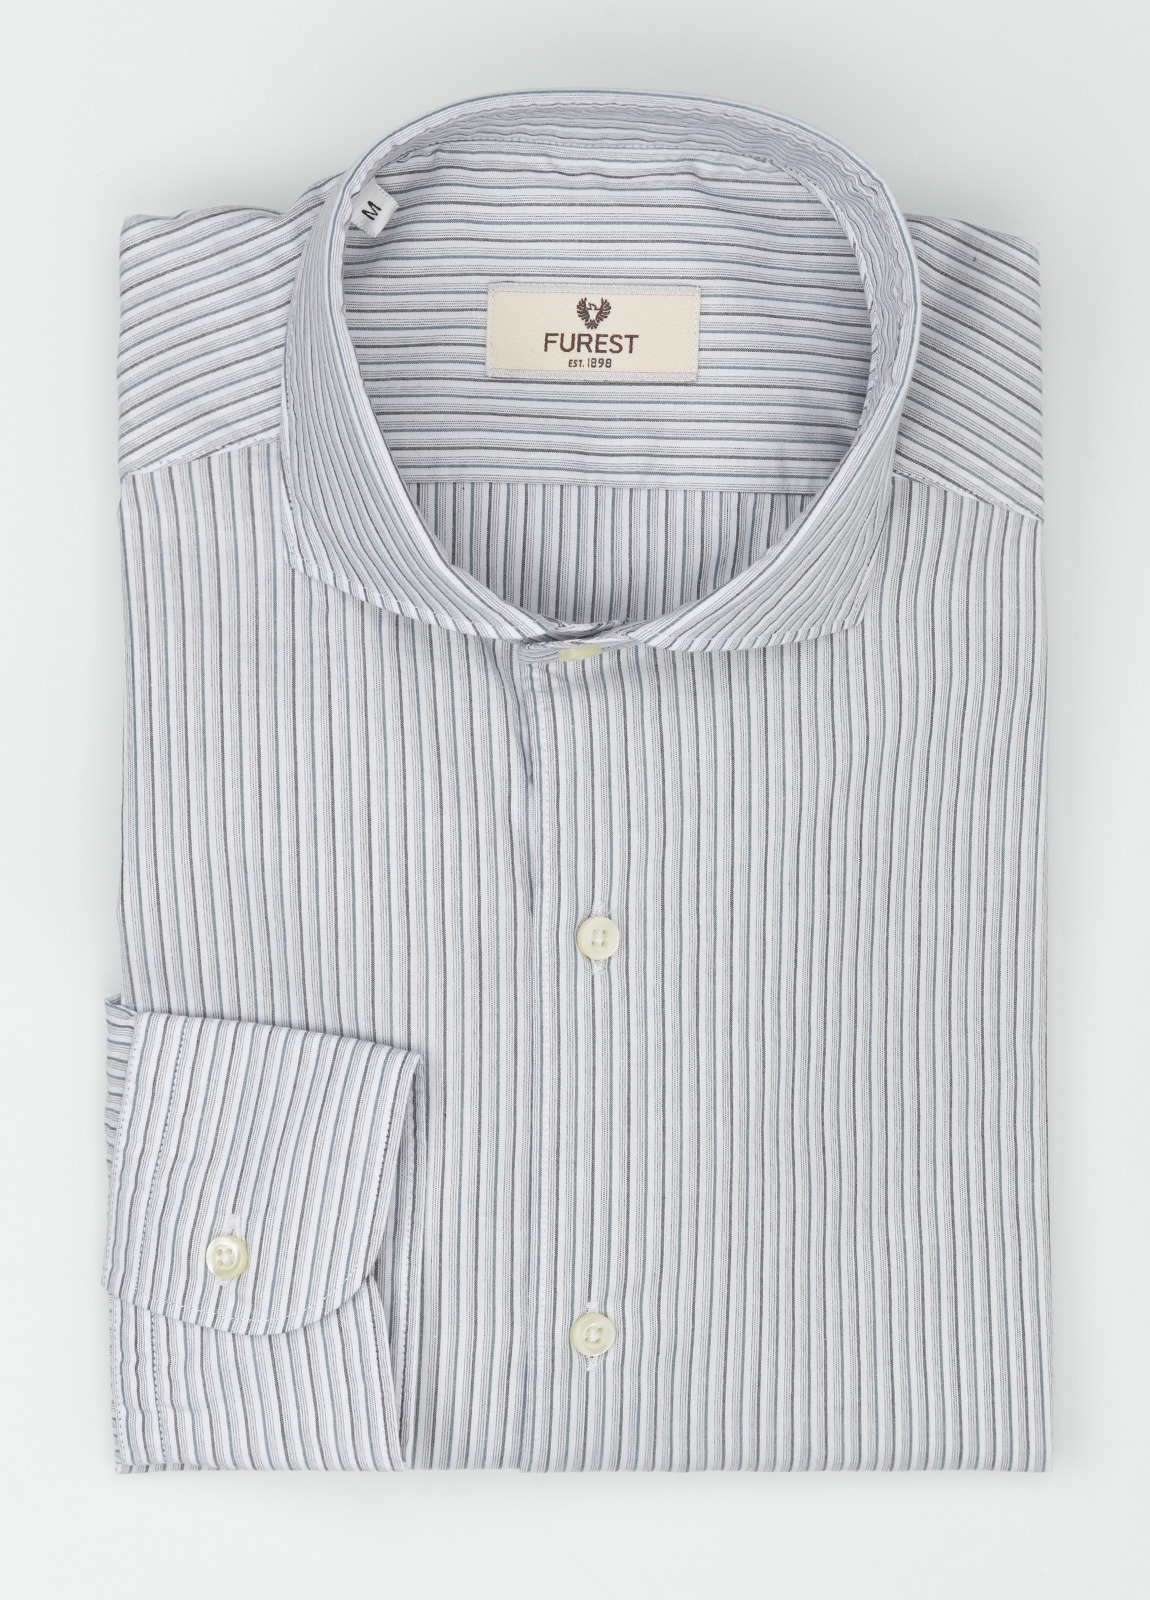 Camisa Leisure Wear SLIM FIT Modelo CAPRI, rayas gris, 100% Algodón.